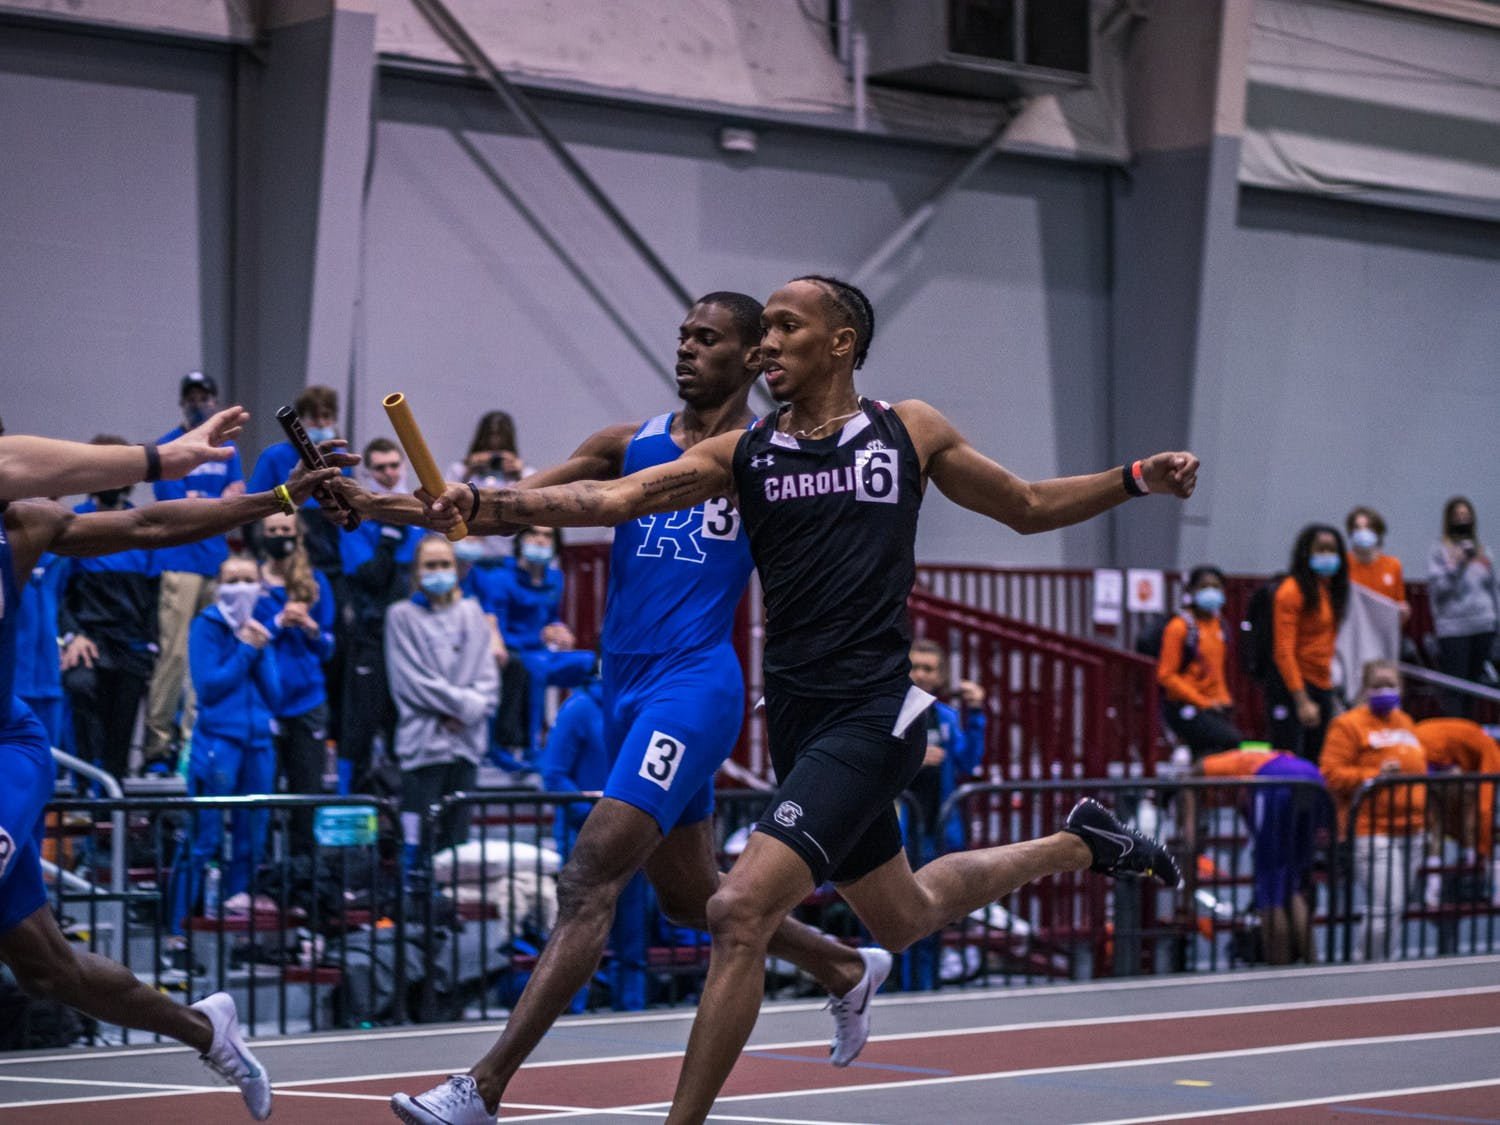 Sophomore EJ Richardson passes the baton to his teammate during a relay race.